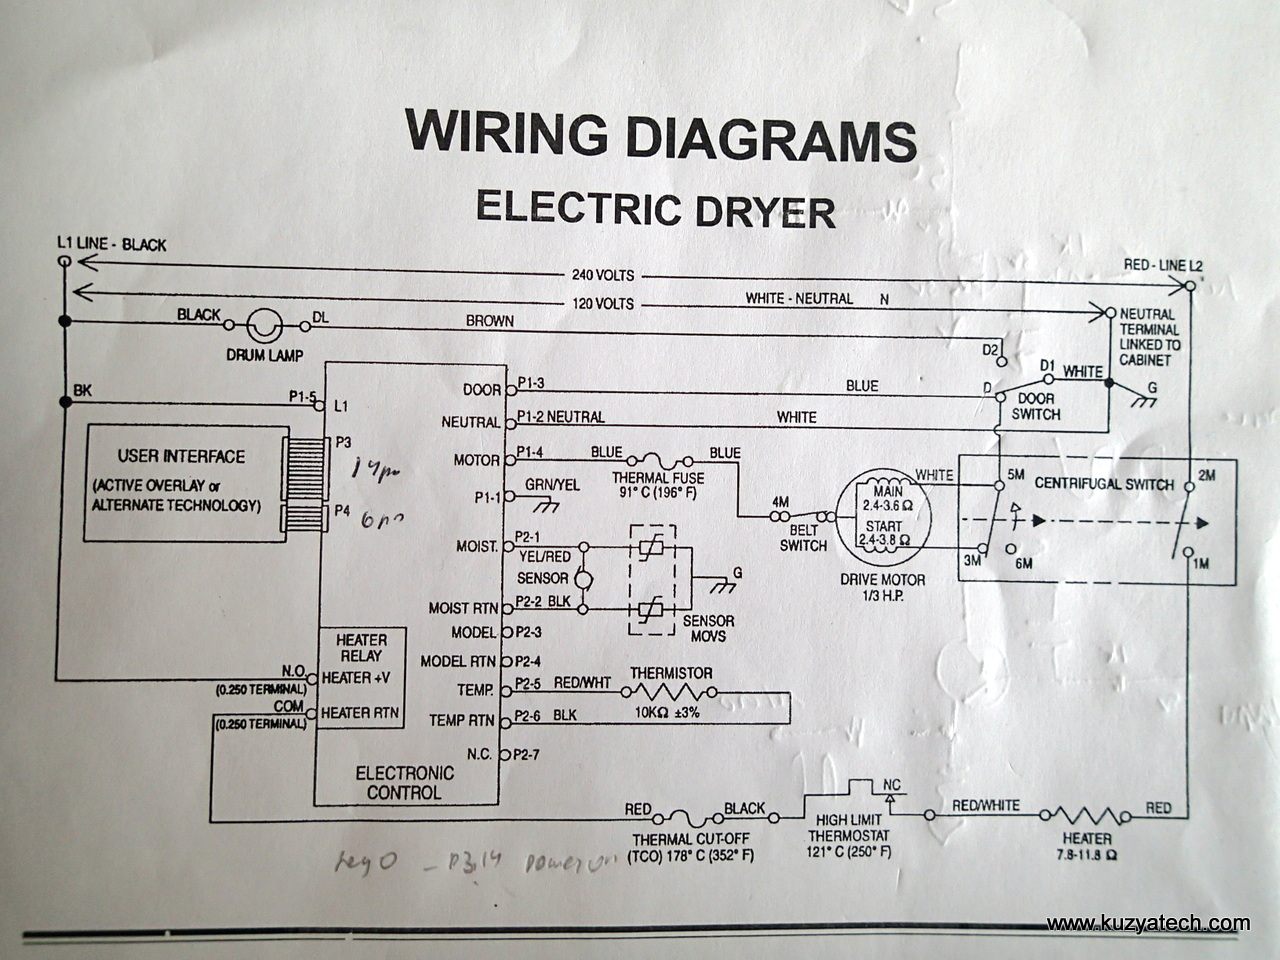 electric dryer wiring diagram class visual paradigm whirlpool duet gew9250pw0 resurrection kuzyatech